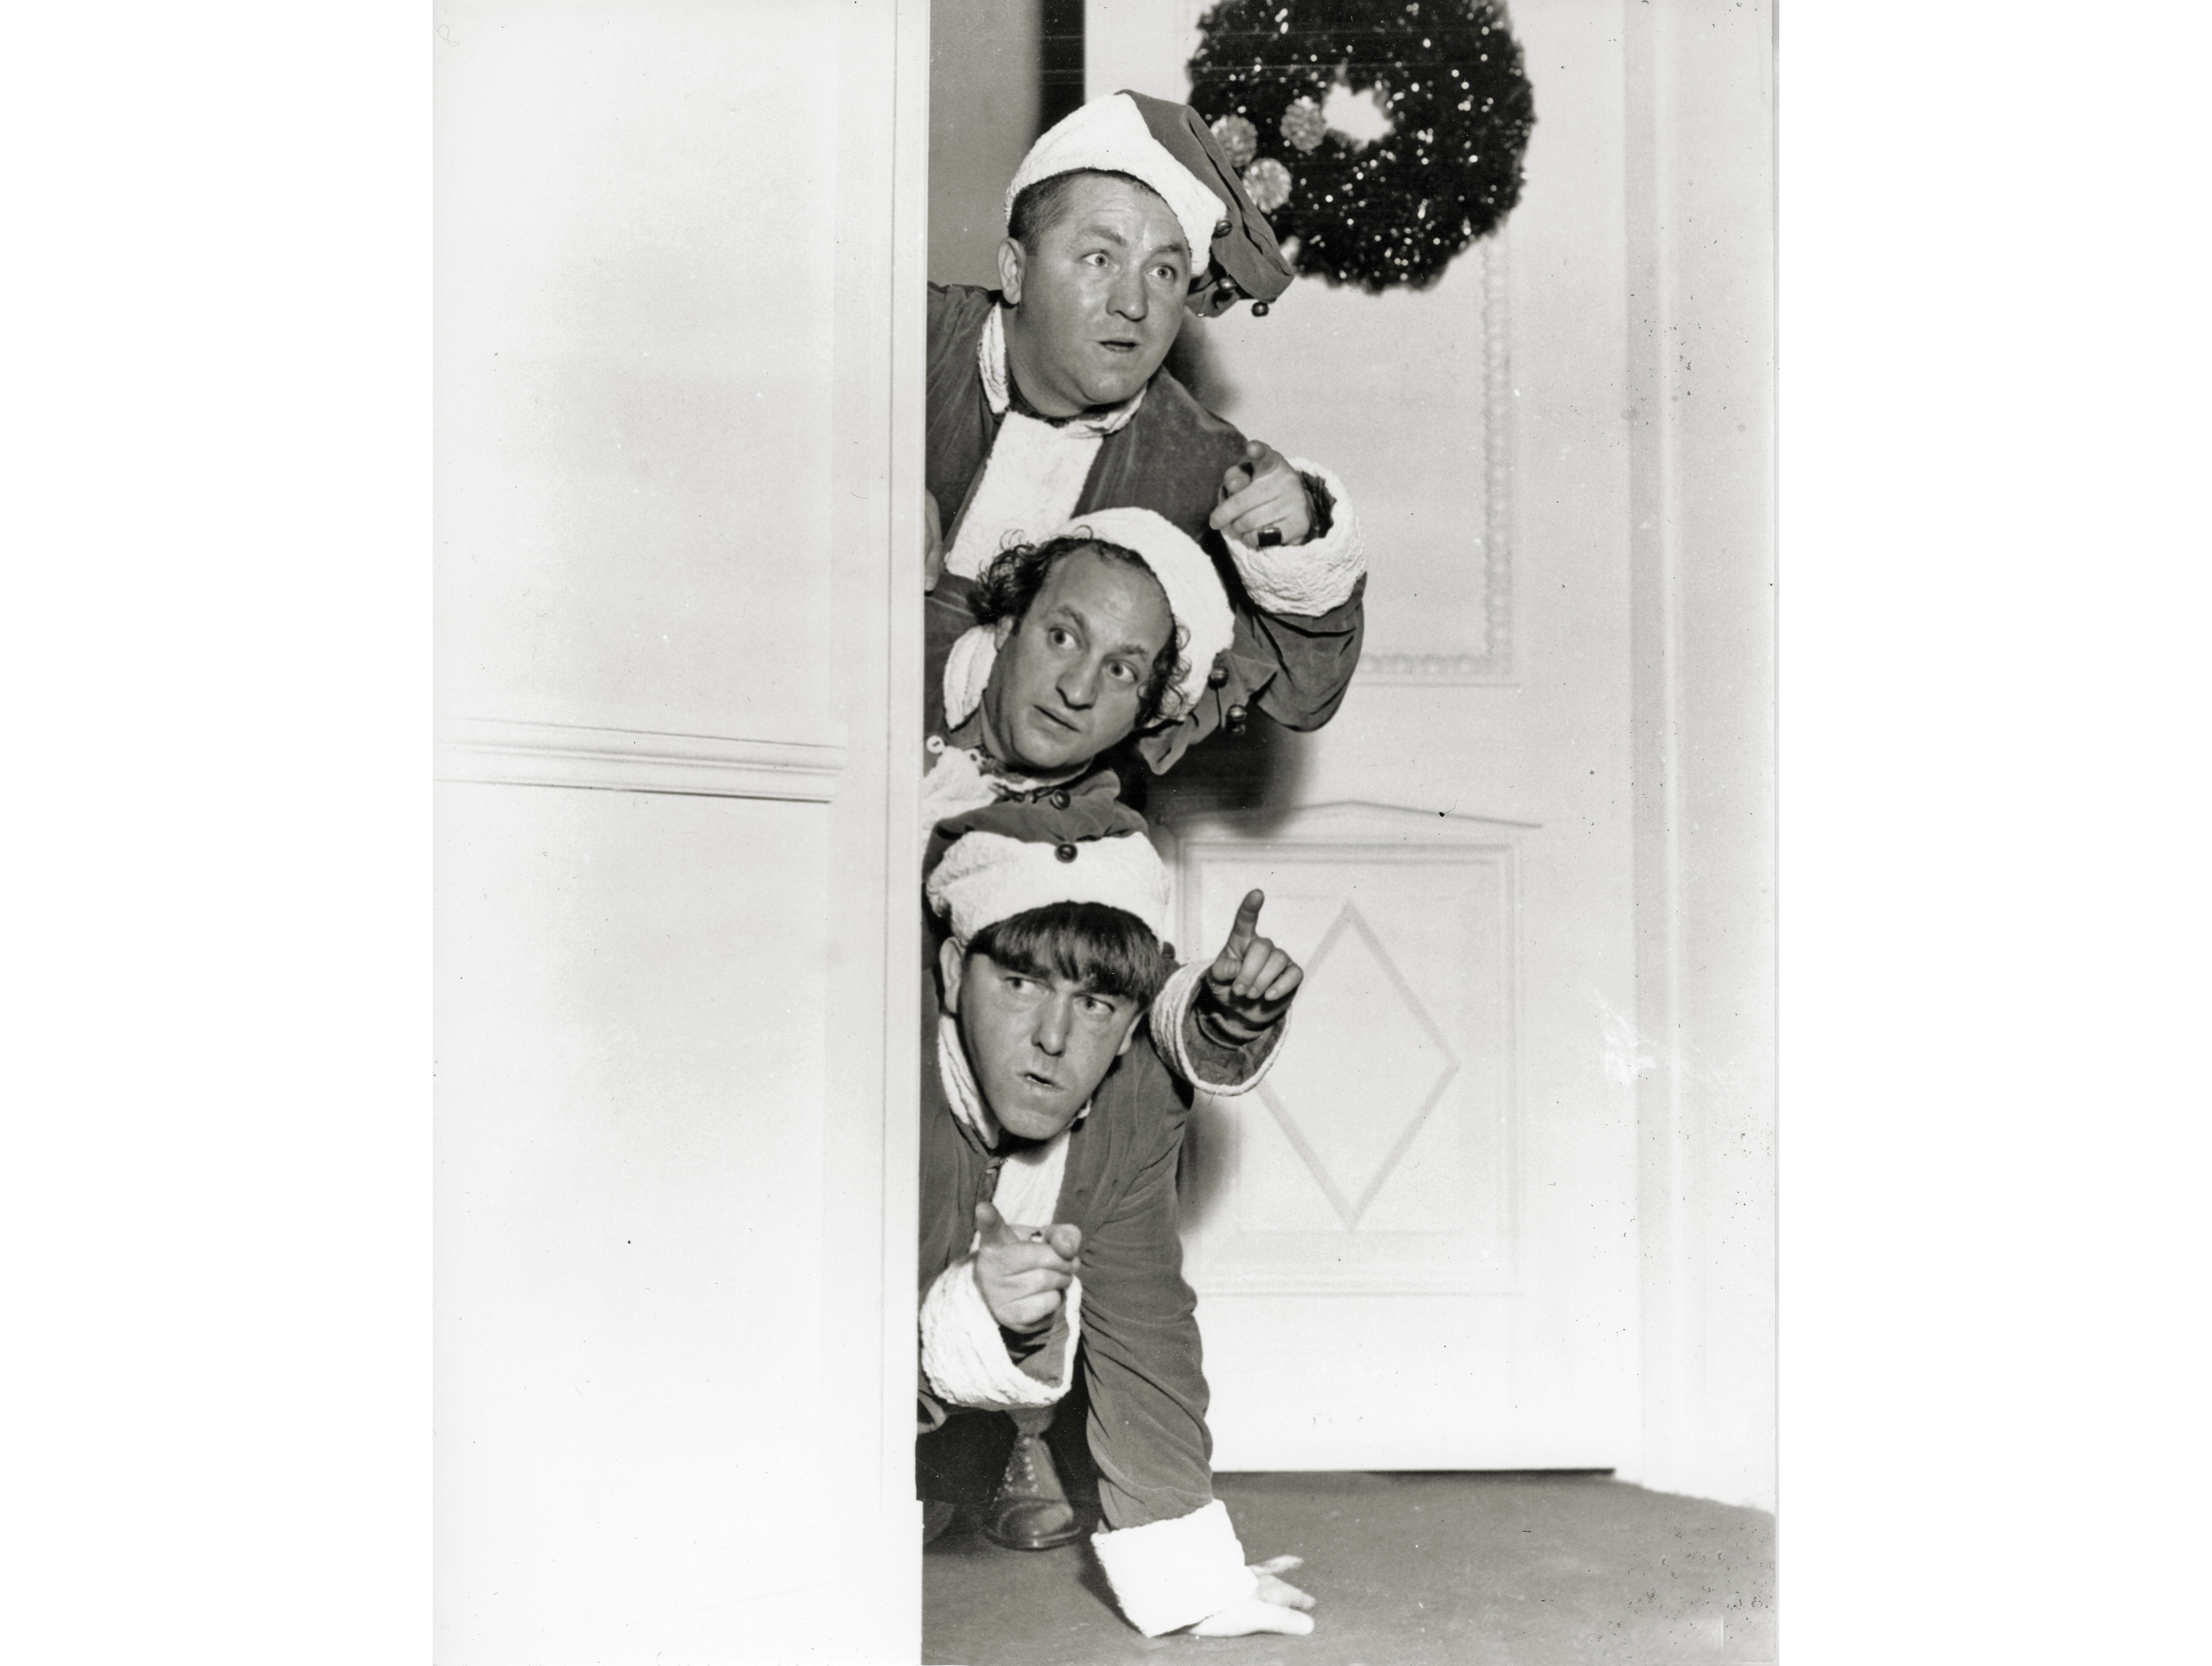 Slaphappy Santas the Three Stooges (Curly Howard, Larry Fine, Moe Howard) watch to see who's been naughty or nice for Christmas.